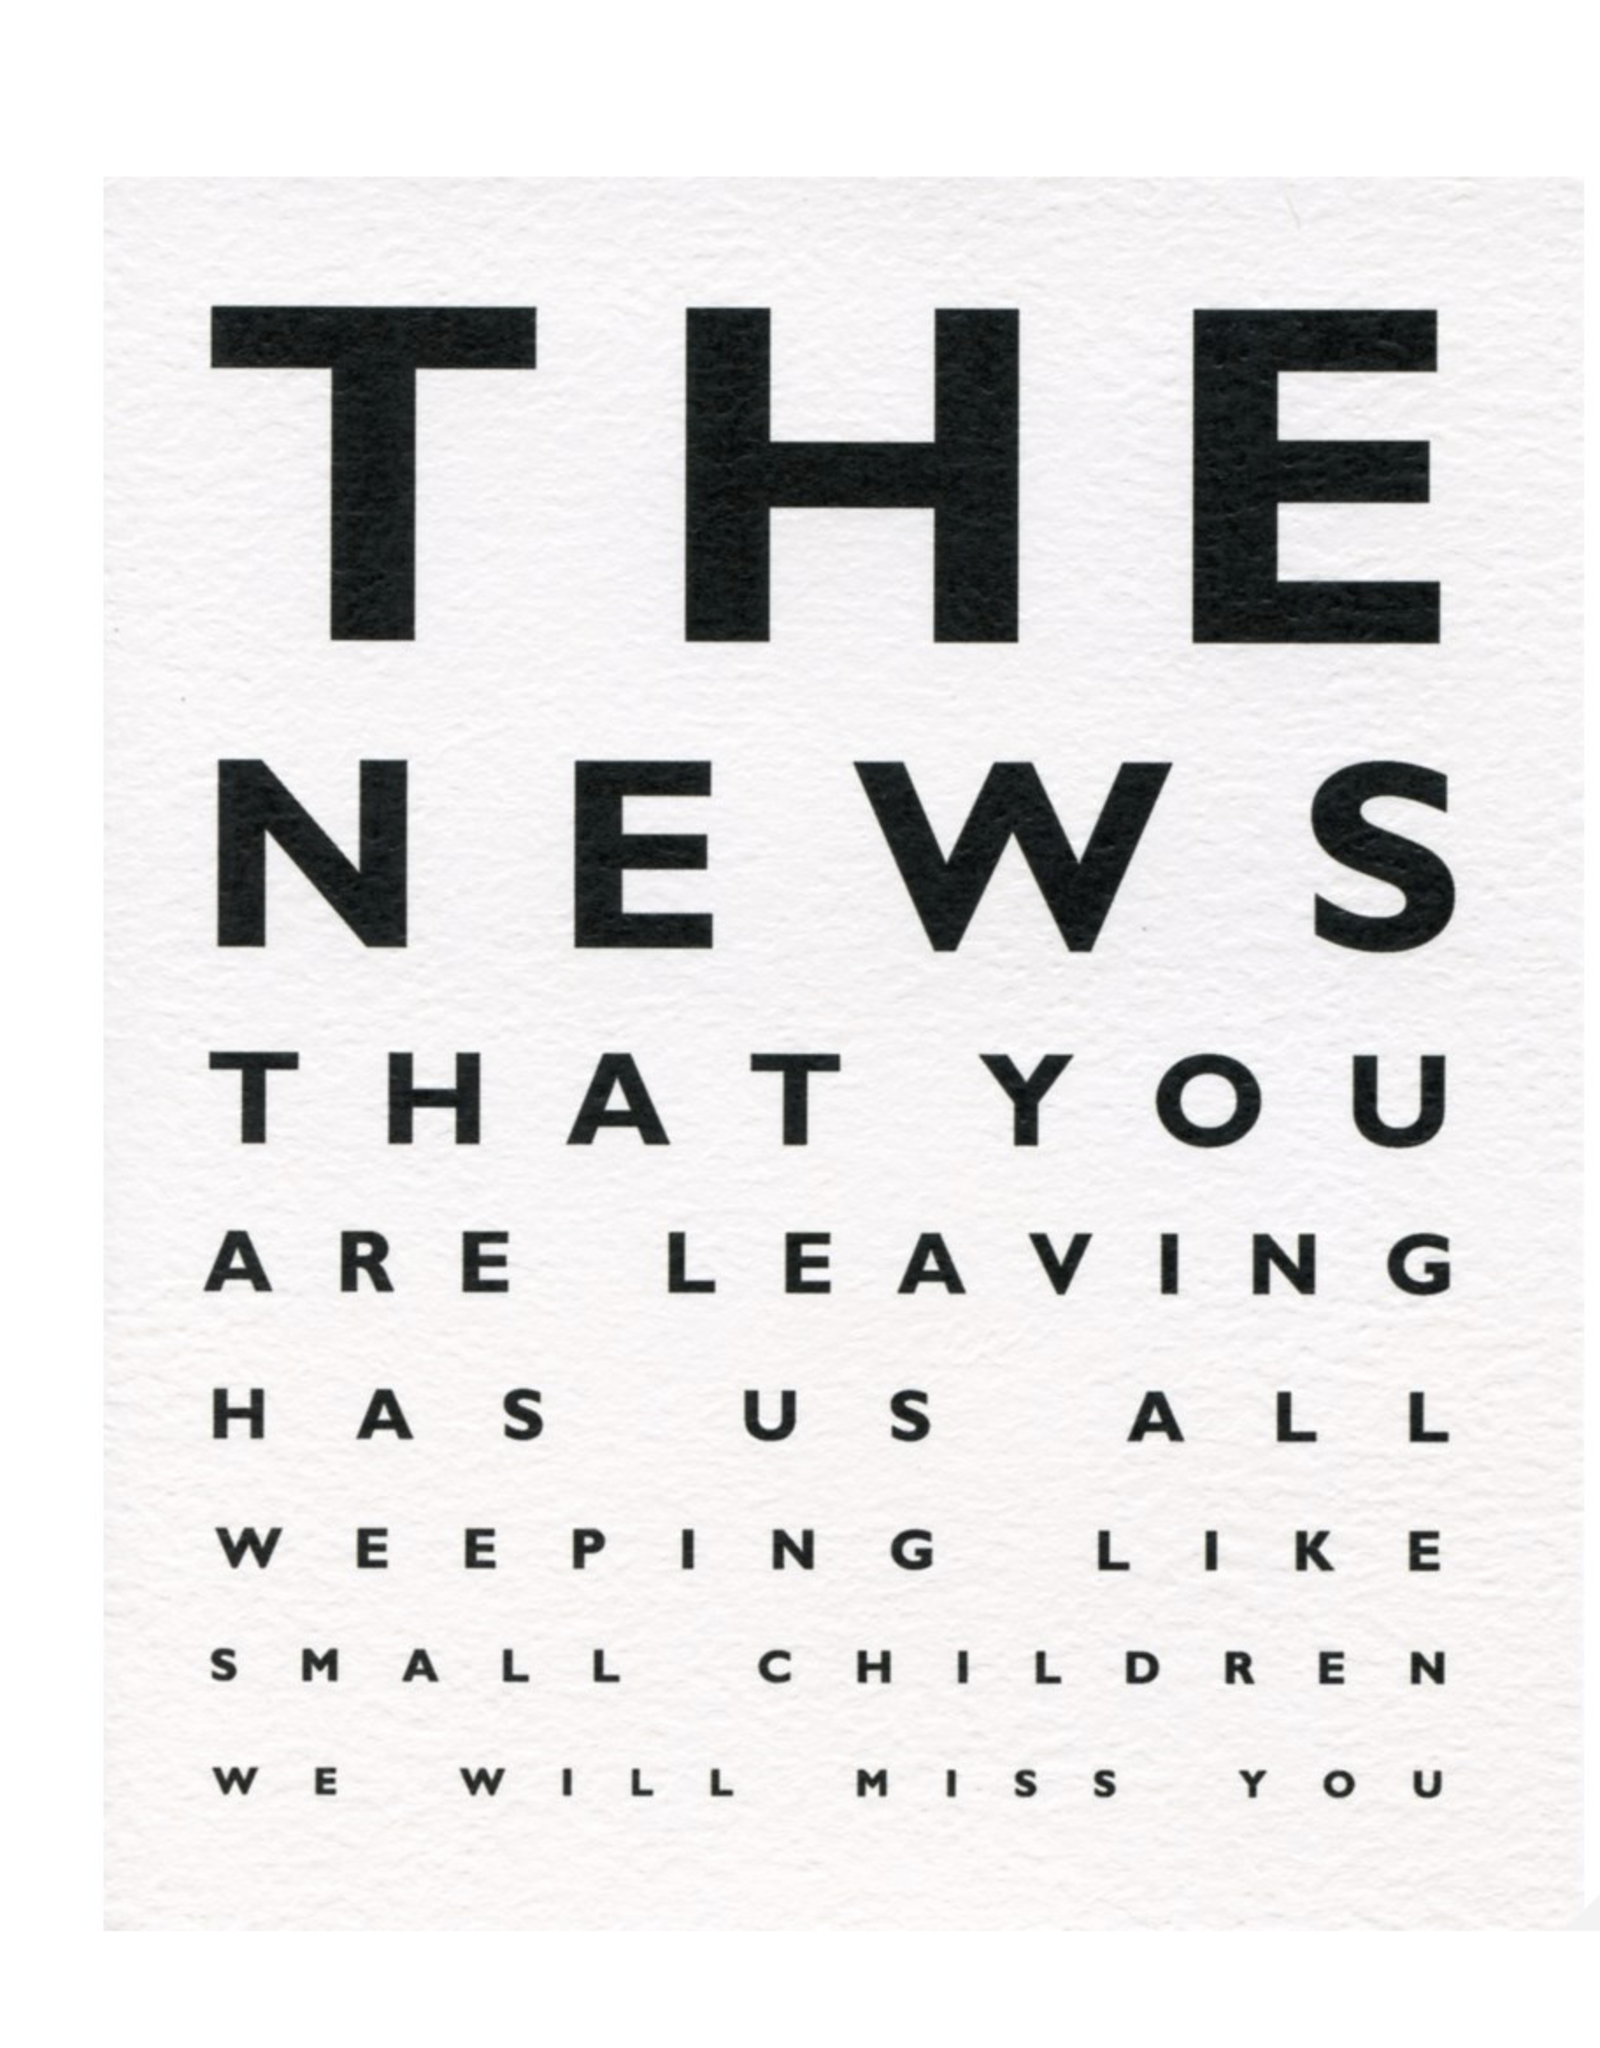 Goodbye - The news that You are Leaving...